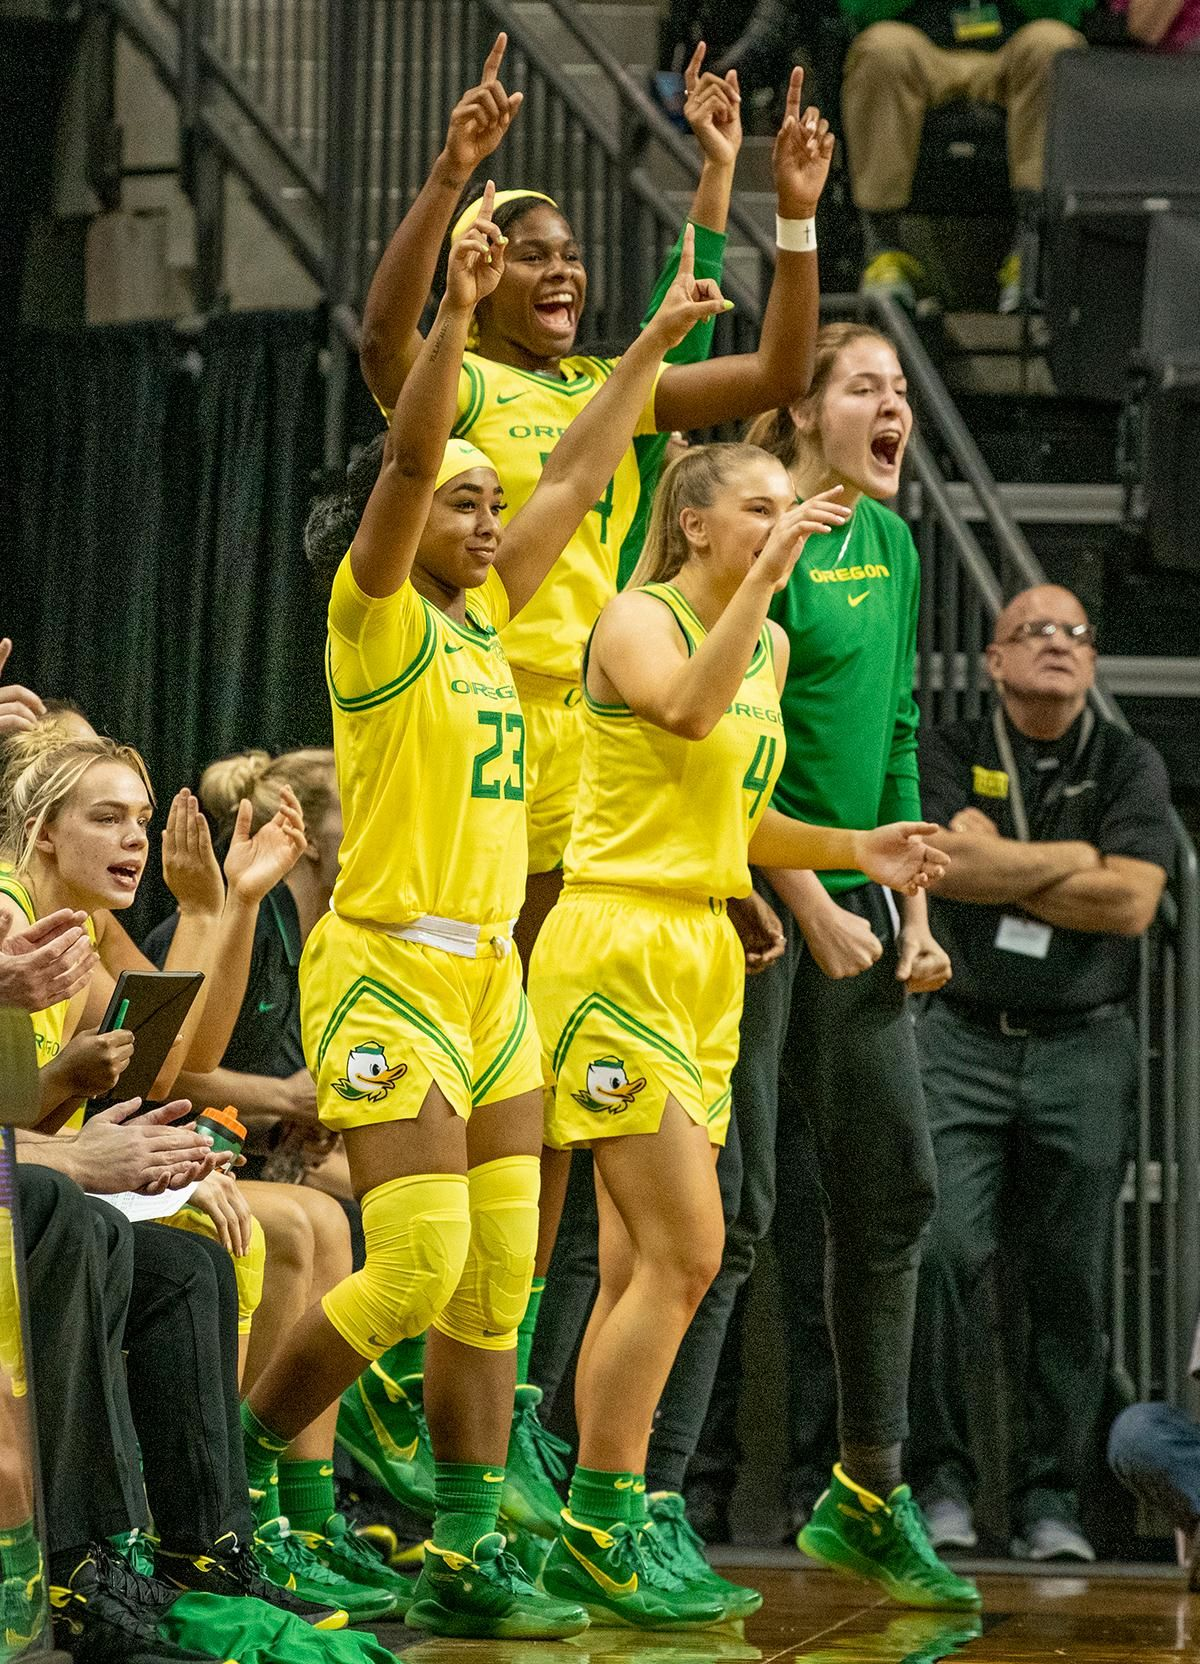 University of Oregon Ducks, left to right, Minyon Moore, #23, Jaz Shelley, #4, and Ruthy Hebard, #24, celebrate from the bench after a score. The University of Oregon Ducks women's basketball team defeated the Utah St. Aggies 109 – 52 in Matt Knight Arena Wednesday evening. Taylor Chavez led the Ducks with 25 points including six three-pointers. Jaz Shelley added 15 for the Ducks. Ruthy Hebard needed six rebounds to have an accumulated career 1000 rebounds; she pulled down 15 and scored 19 points for a double-double. Sabrina Ionescu needed four points to have an accumulated career 2000 points; she scored 16 points and had 12 assists for a double-double. Photo by Jeffrey Price